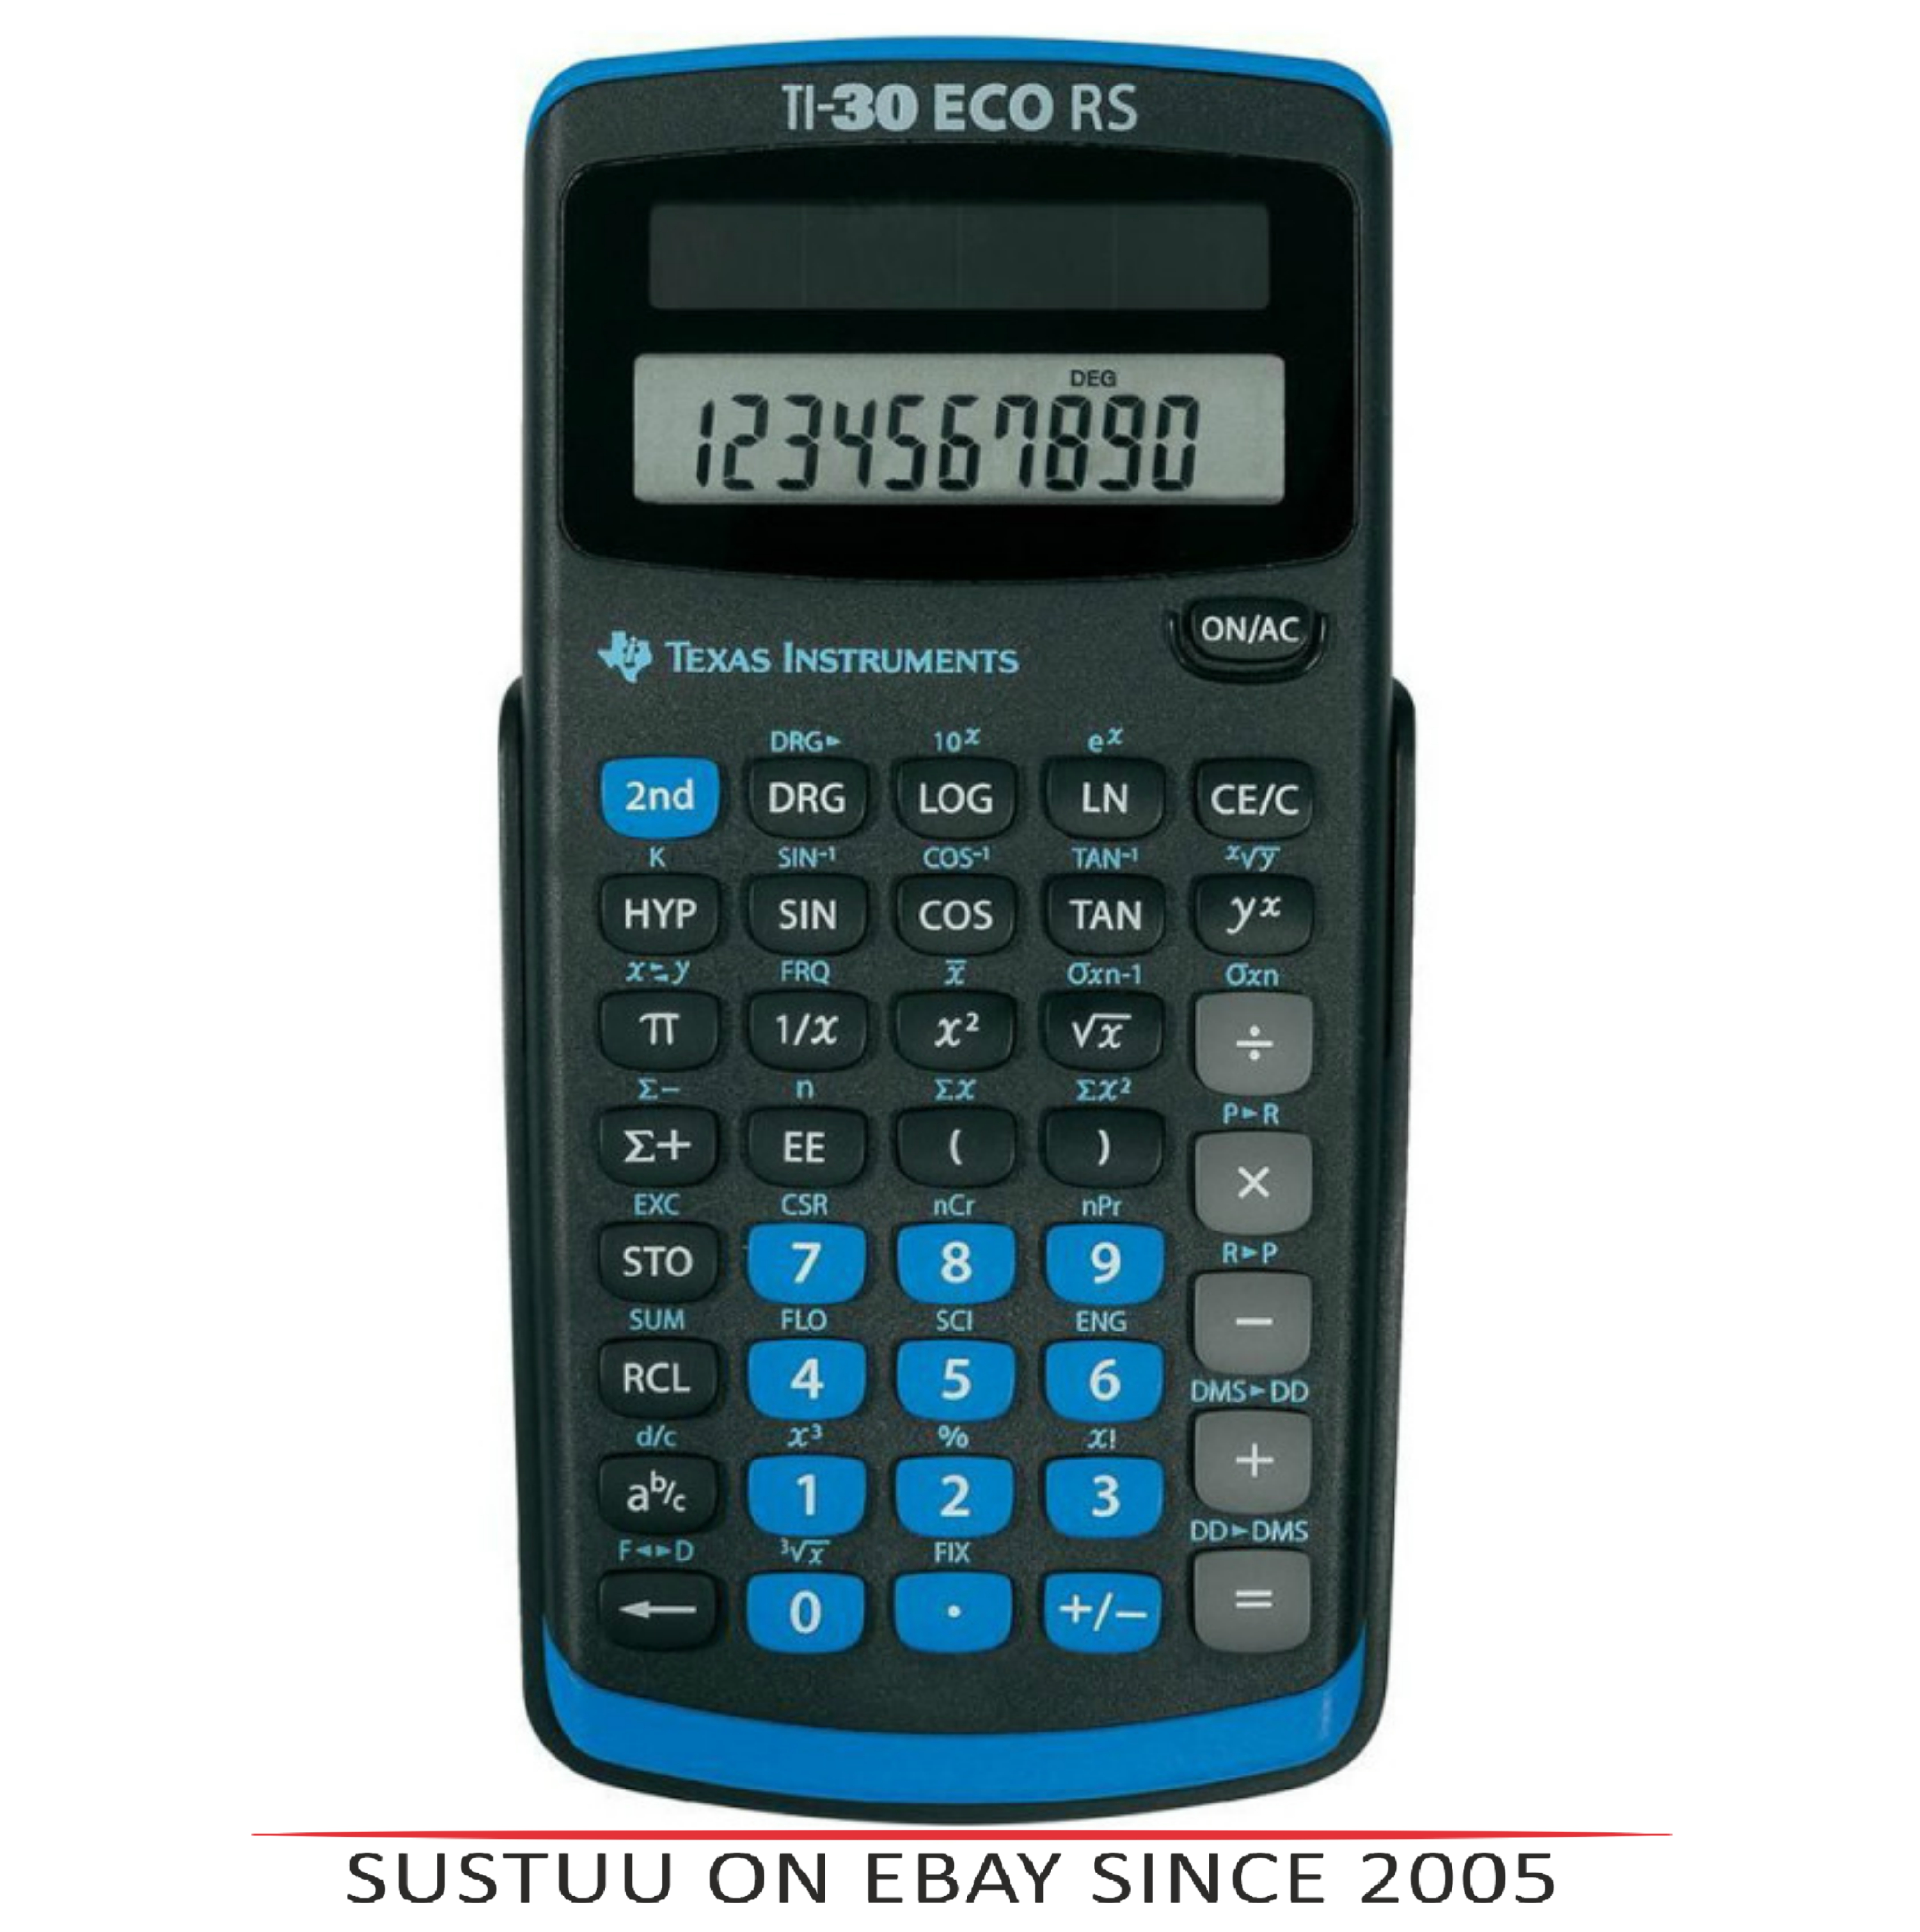 Texas Instruments 30RS/TBL/5E1 Power Scientific Calculator|Solar Battery|10Digit